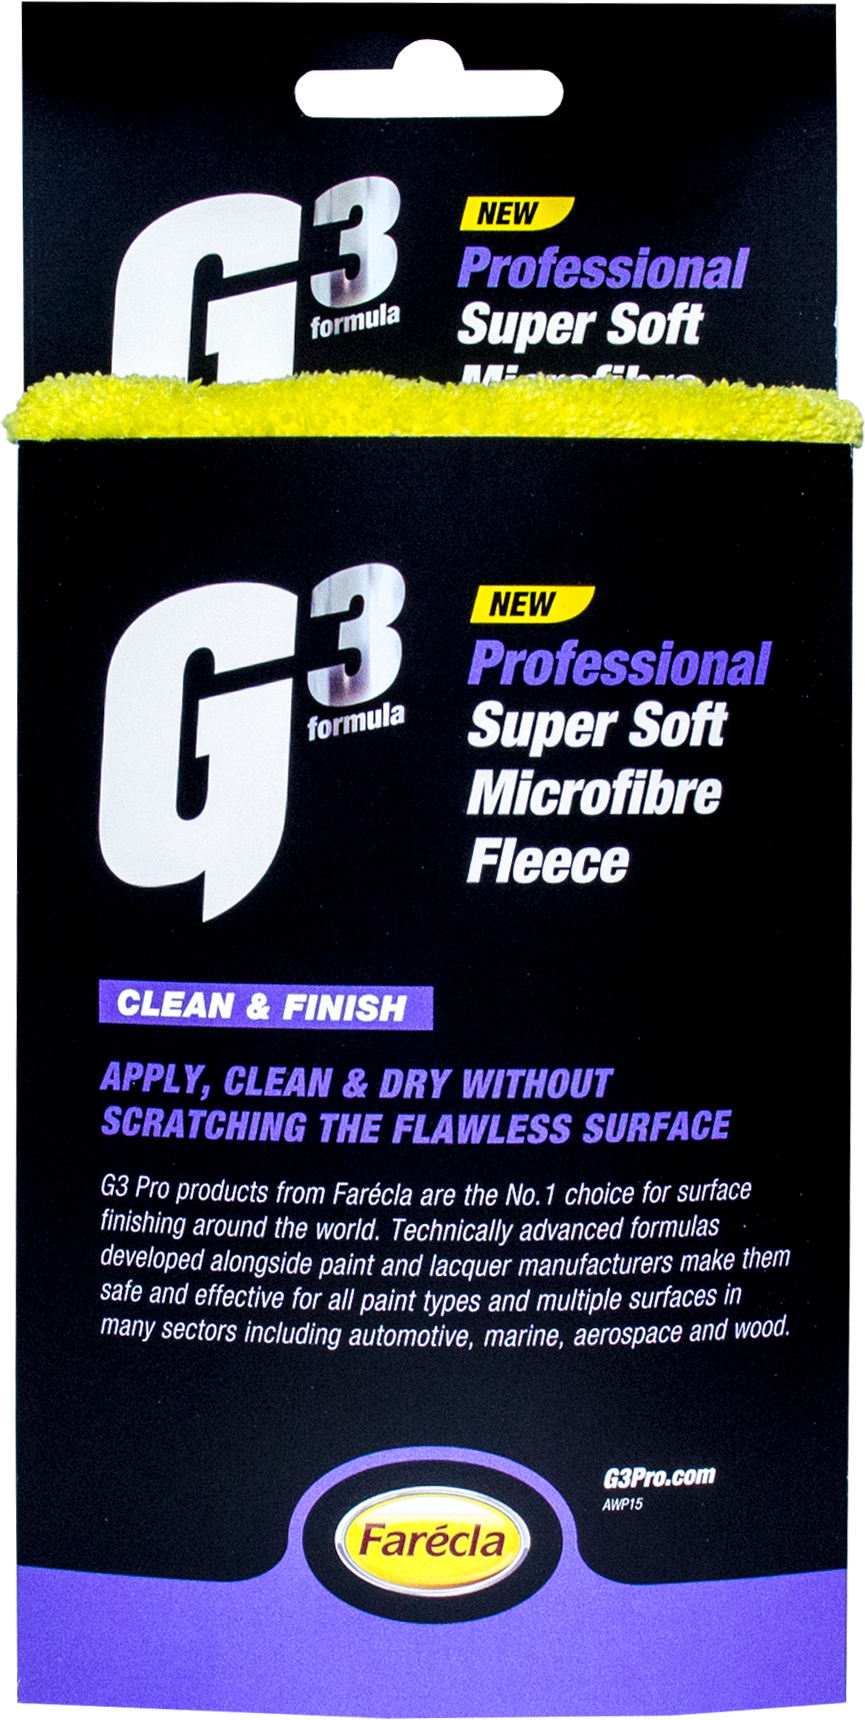 G3 PRO SUPER SOFT MICROFIBRE FLEECE - Auto Fresh Detailing